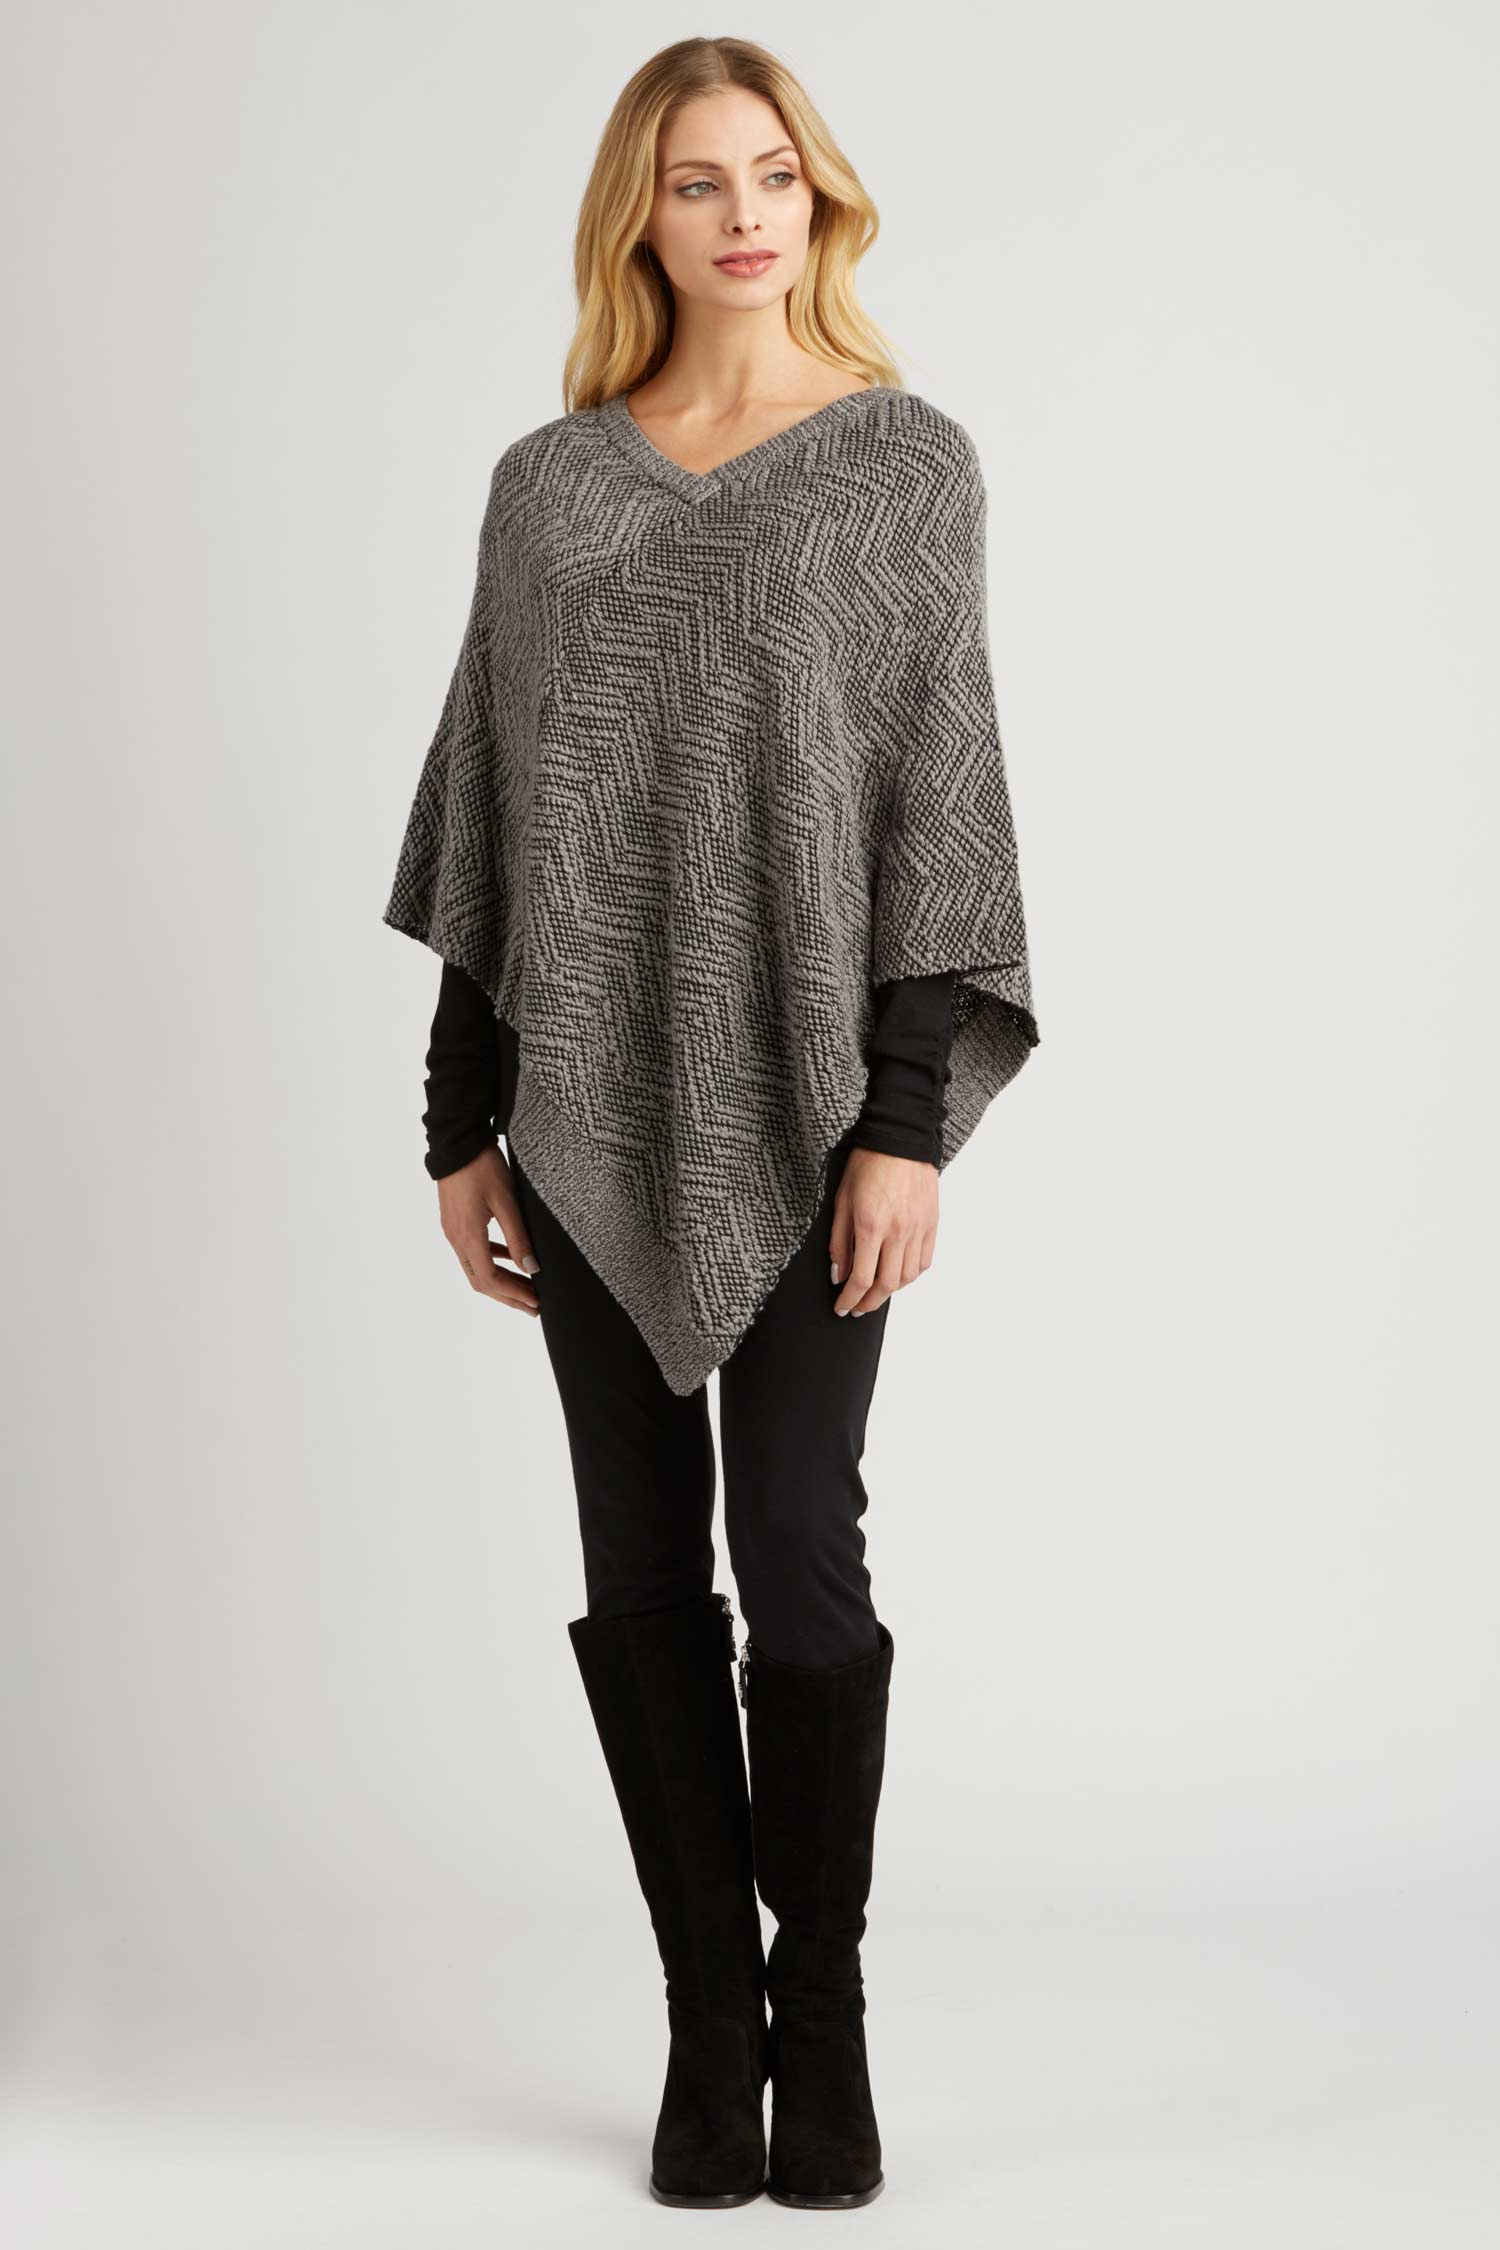 Womens Knit Poncho in Organic Cotton | Artisan Handknit